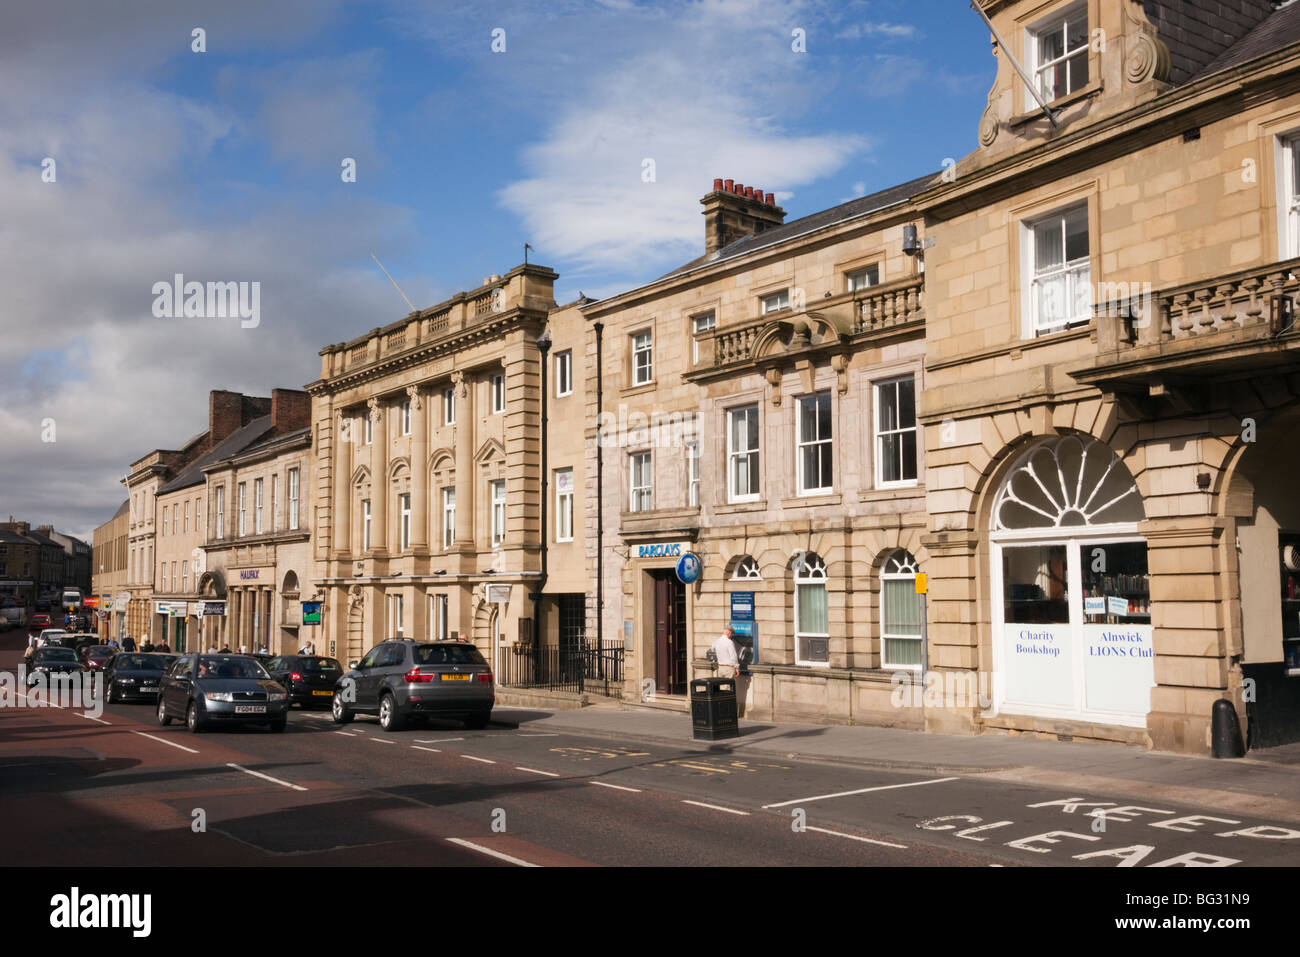 Barclays Lloyds TSB and Halifax Banks with person using Hole in the Wall ATM in Bondgate, Alnwick, Northumberland, - Stock Image